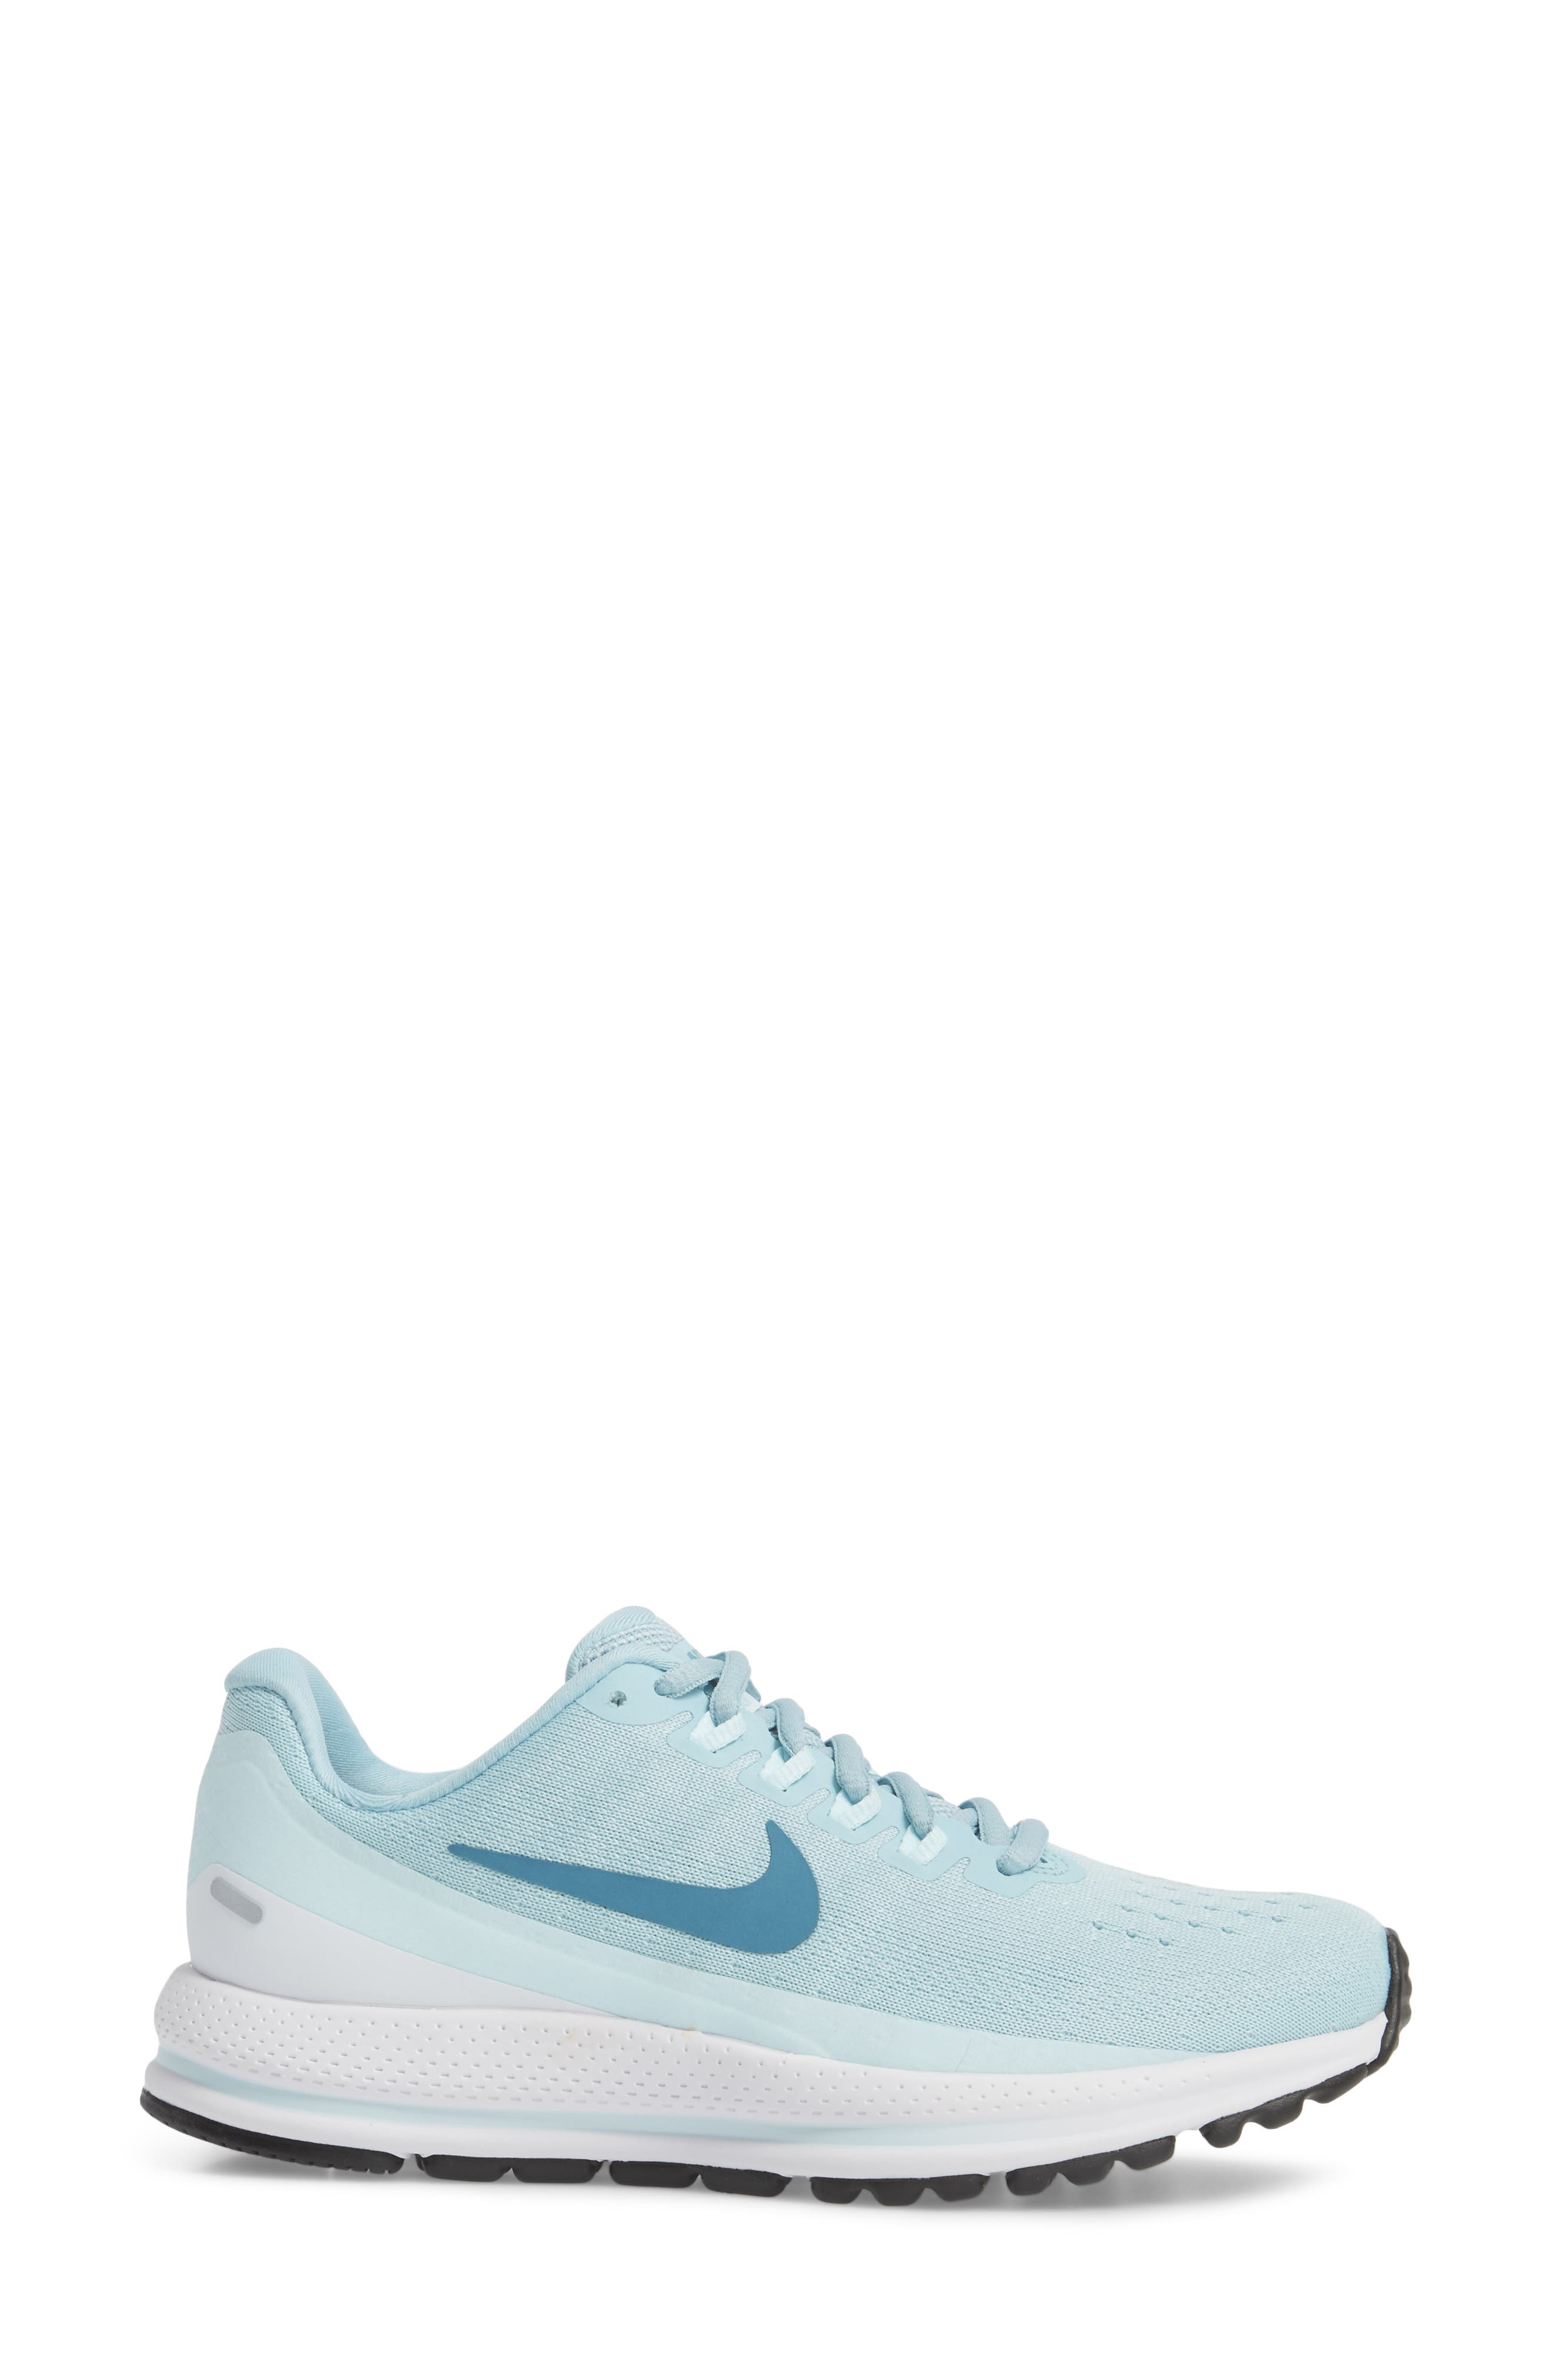 Air Zoom Vomero 13 Running Shoe,                             Alternate thumbnail 26, color,